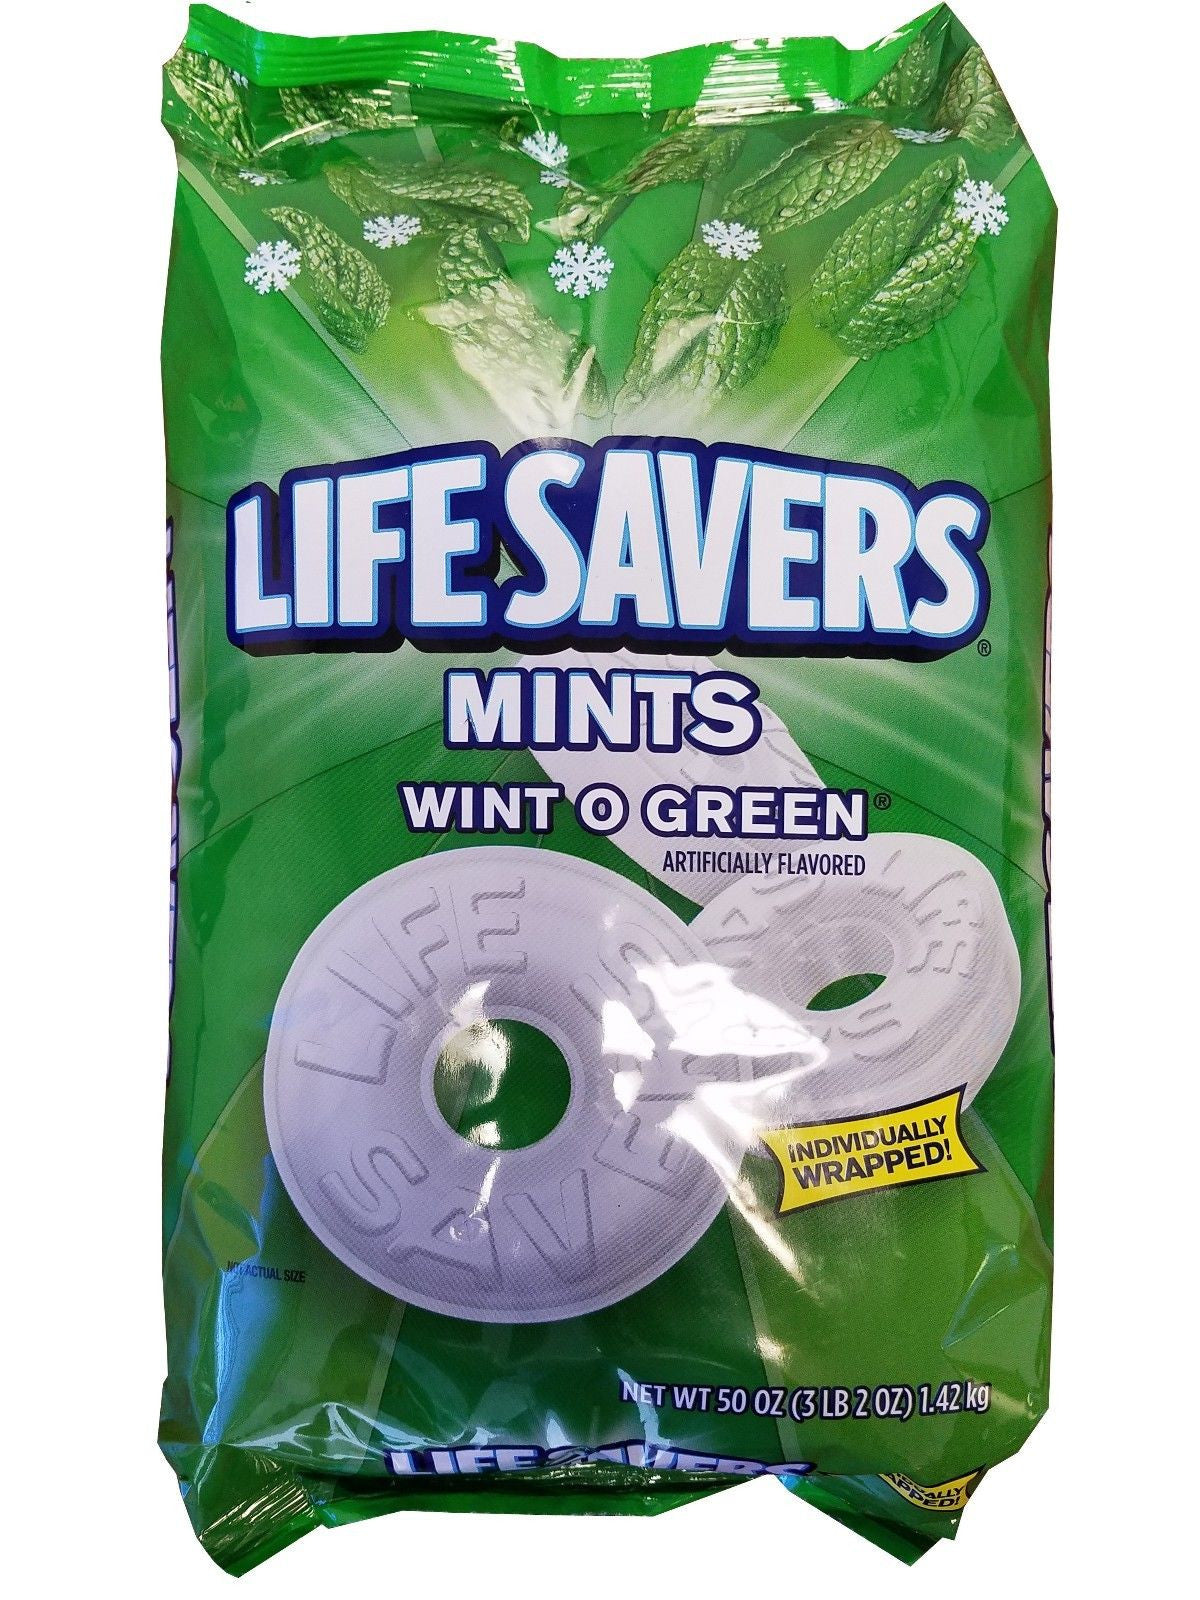 Life Savers Mints Wint O Green Party Bag Wintergreen Candy 3LB 2OZ